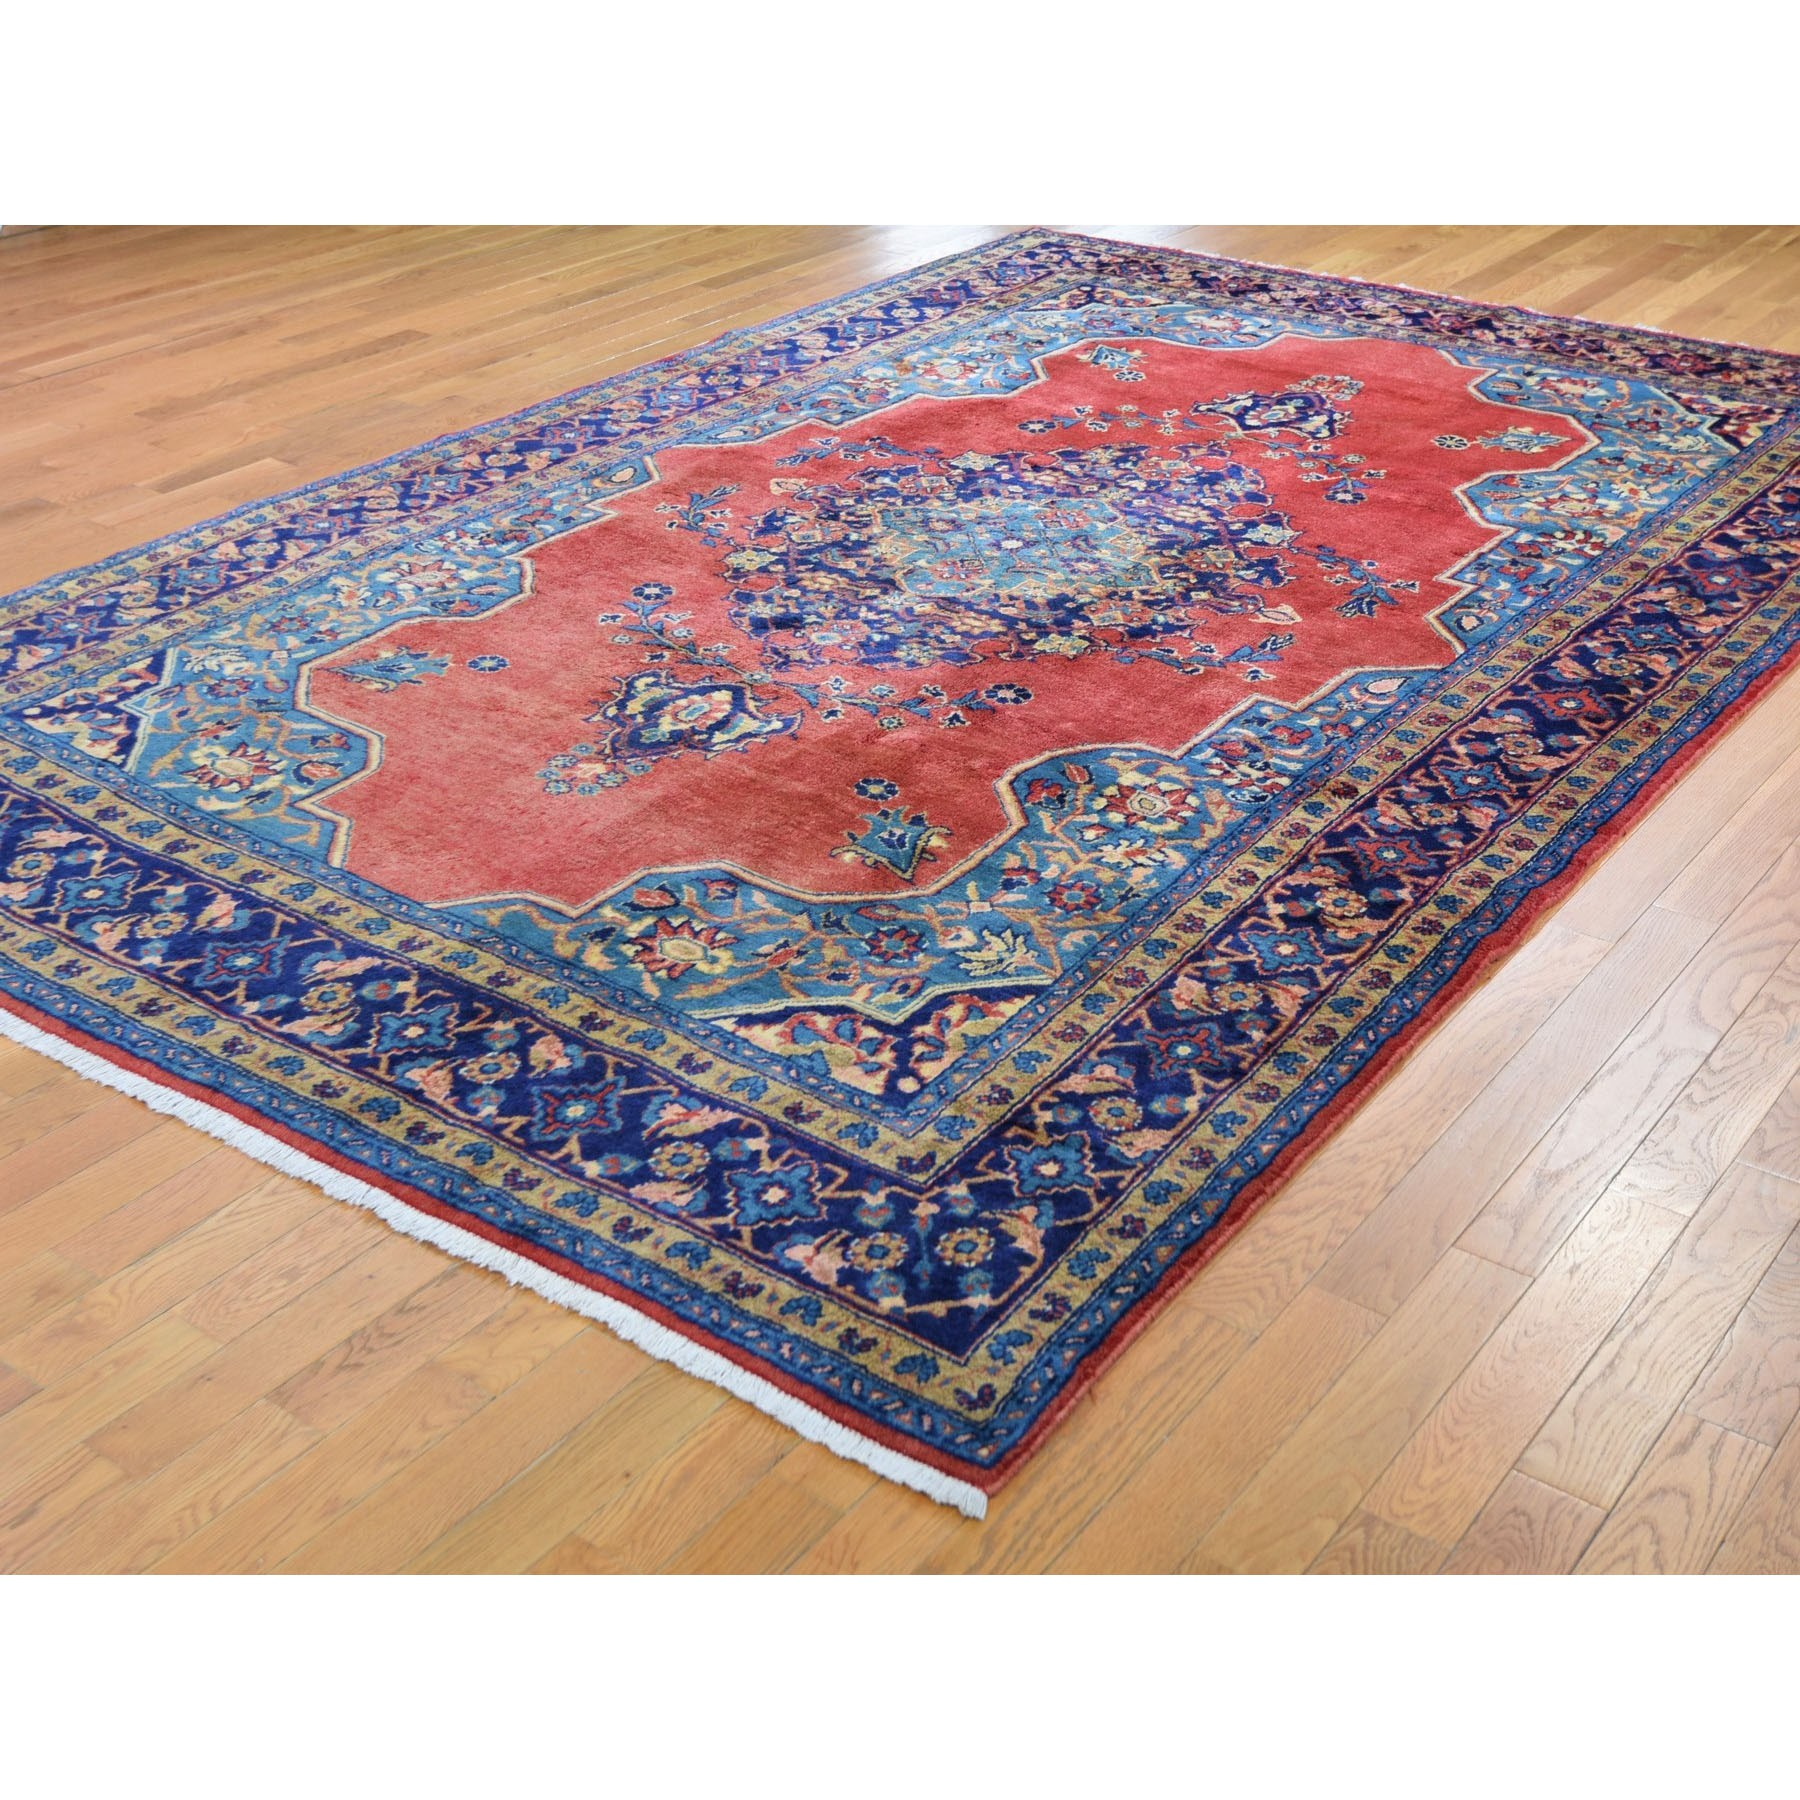 "7'9""x12' Red Vintage Persian Viss Full Pile Clean And Soft Pure Wool Hand Woven Oriental Rug"